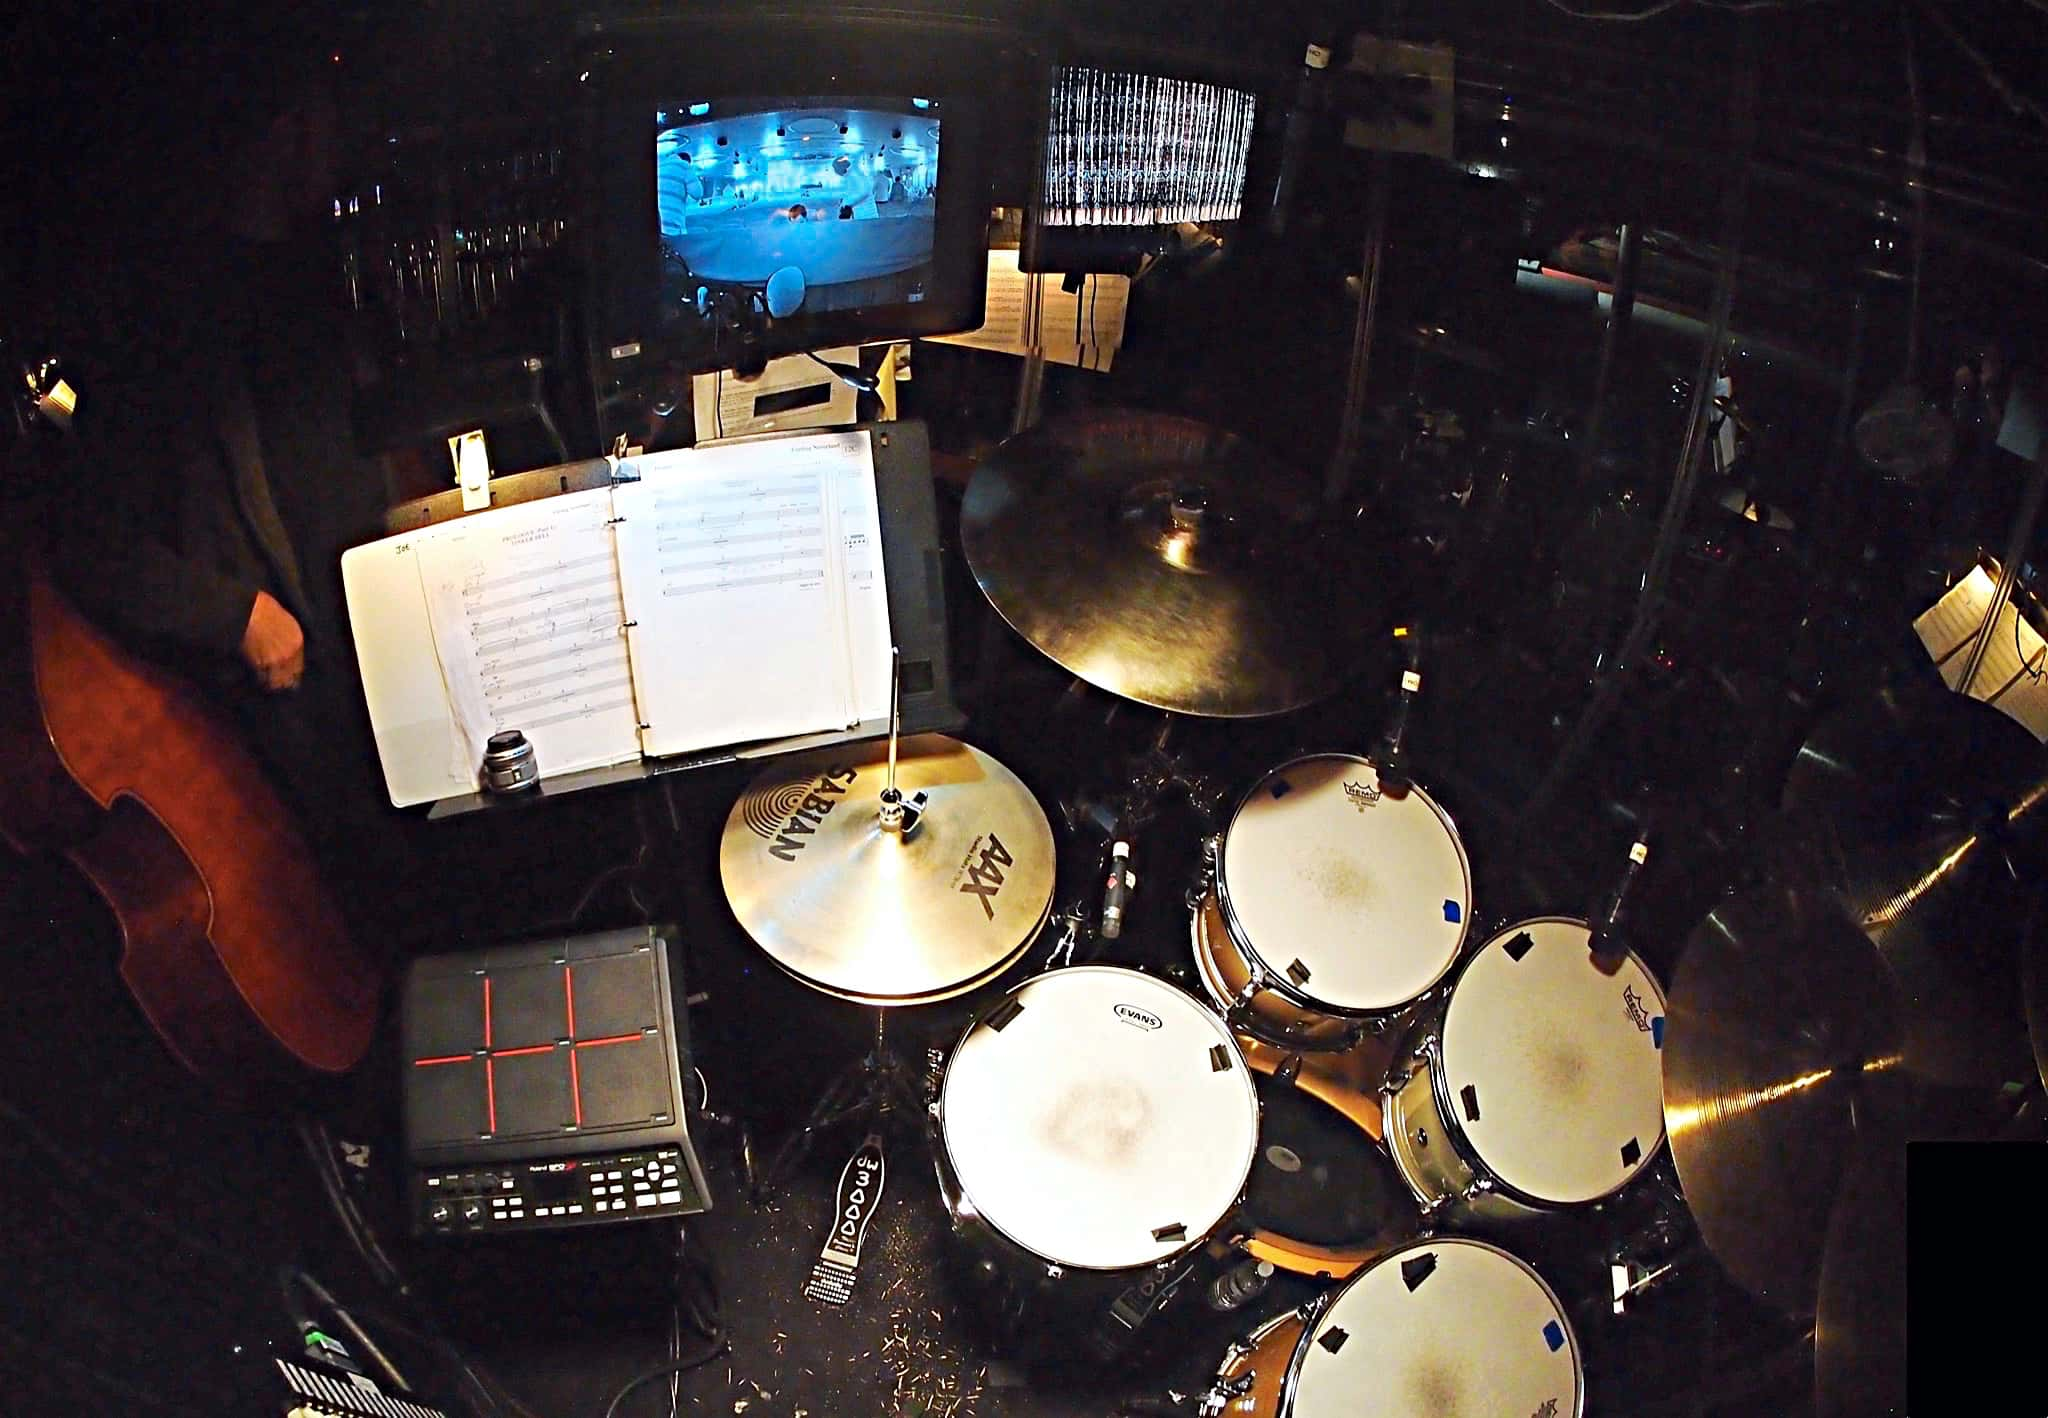 Joe Choroszewski's drum set setup for the Broadway production of Finding Neverland at the Lunt-Fontanne Theatre.